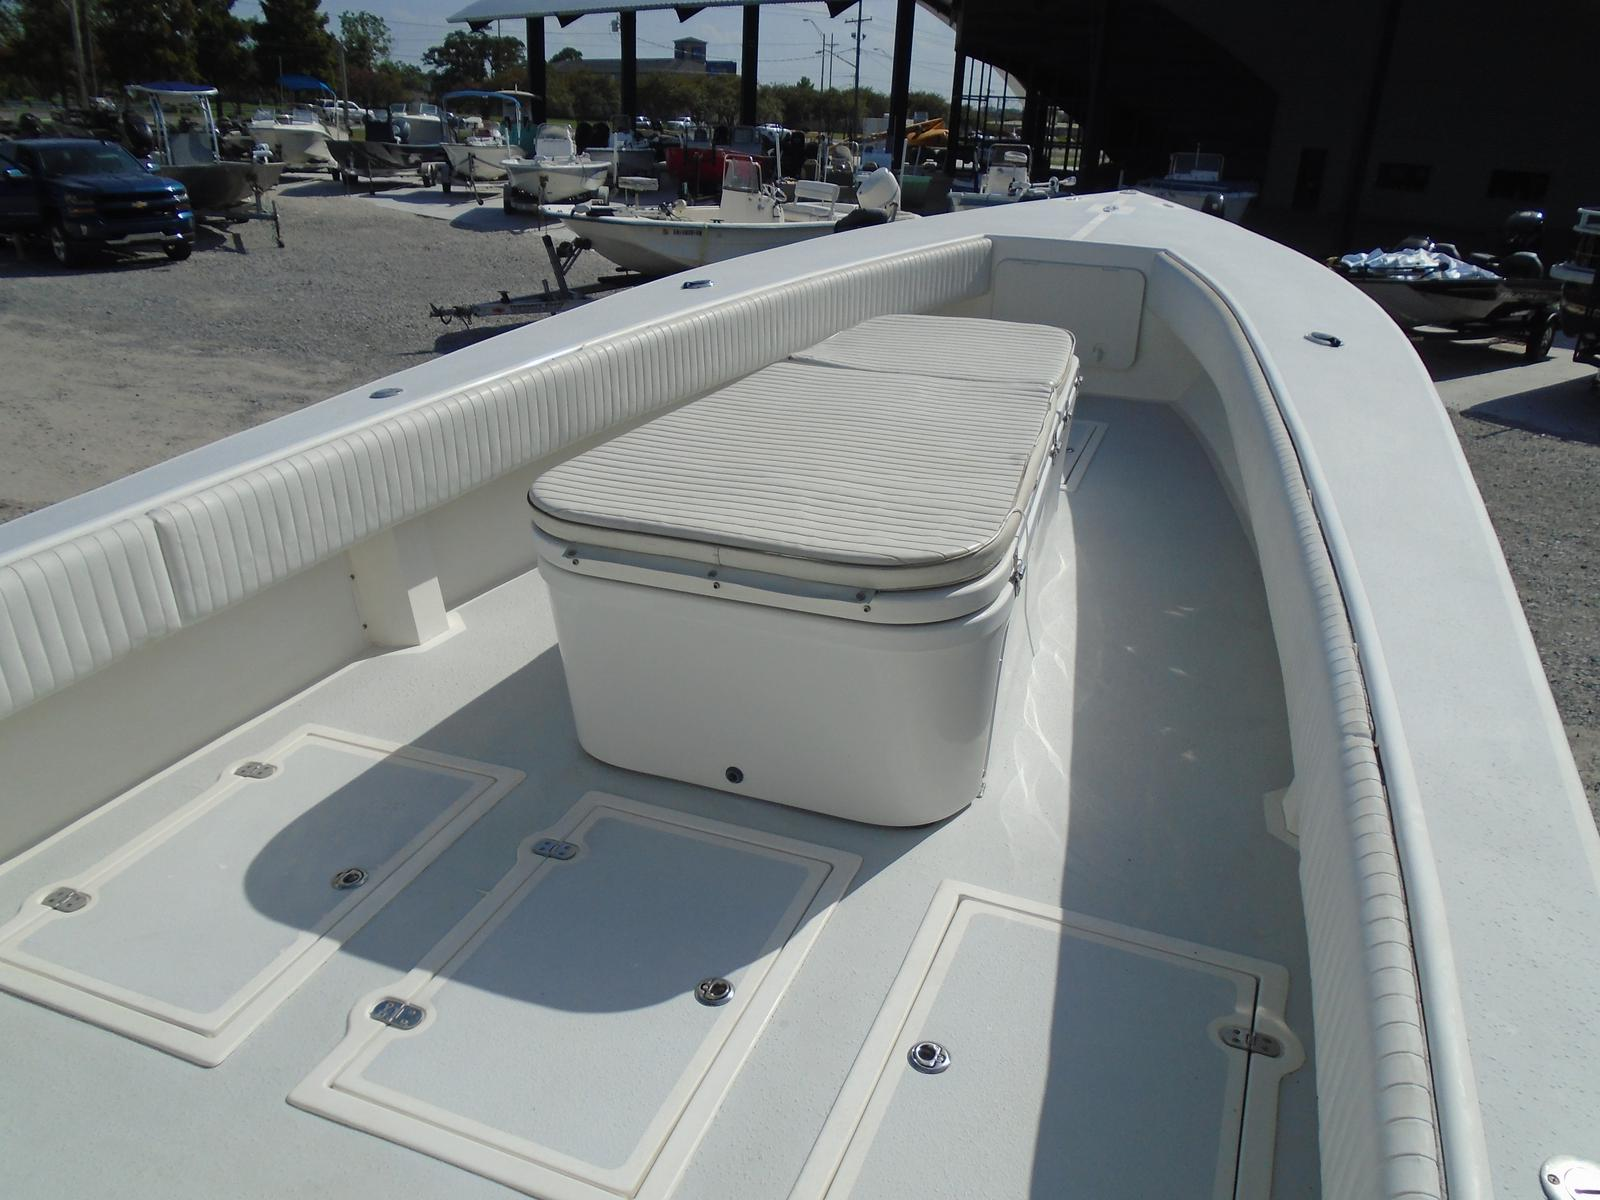 2007 Sabalo boat for sale, model of the boat is 41 Custom CC & Image # 27 of 50